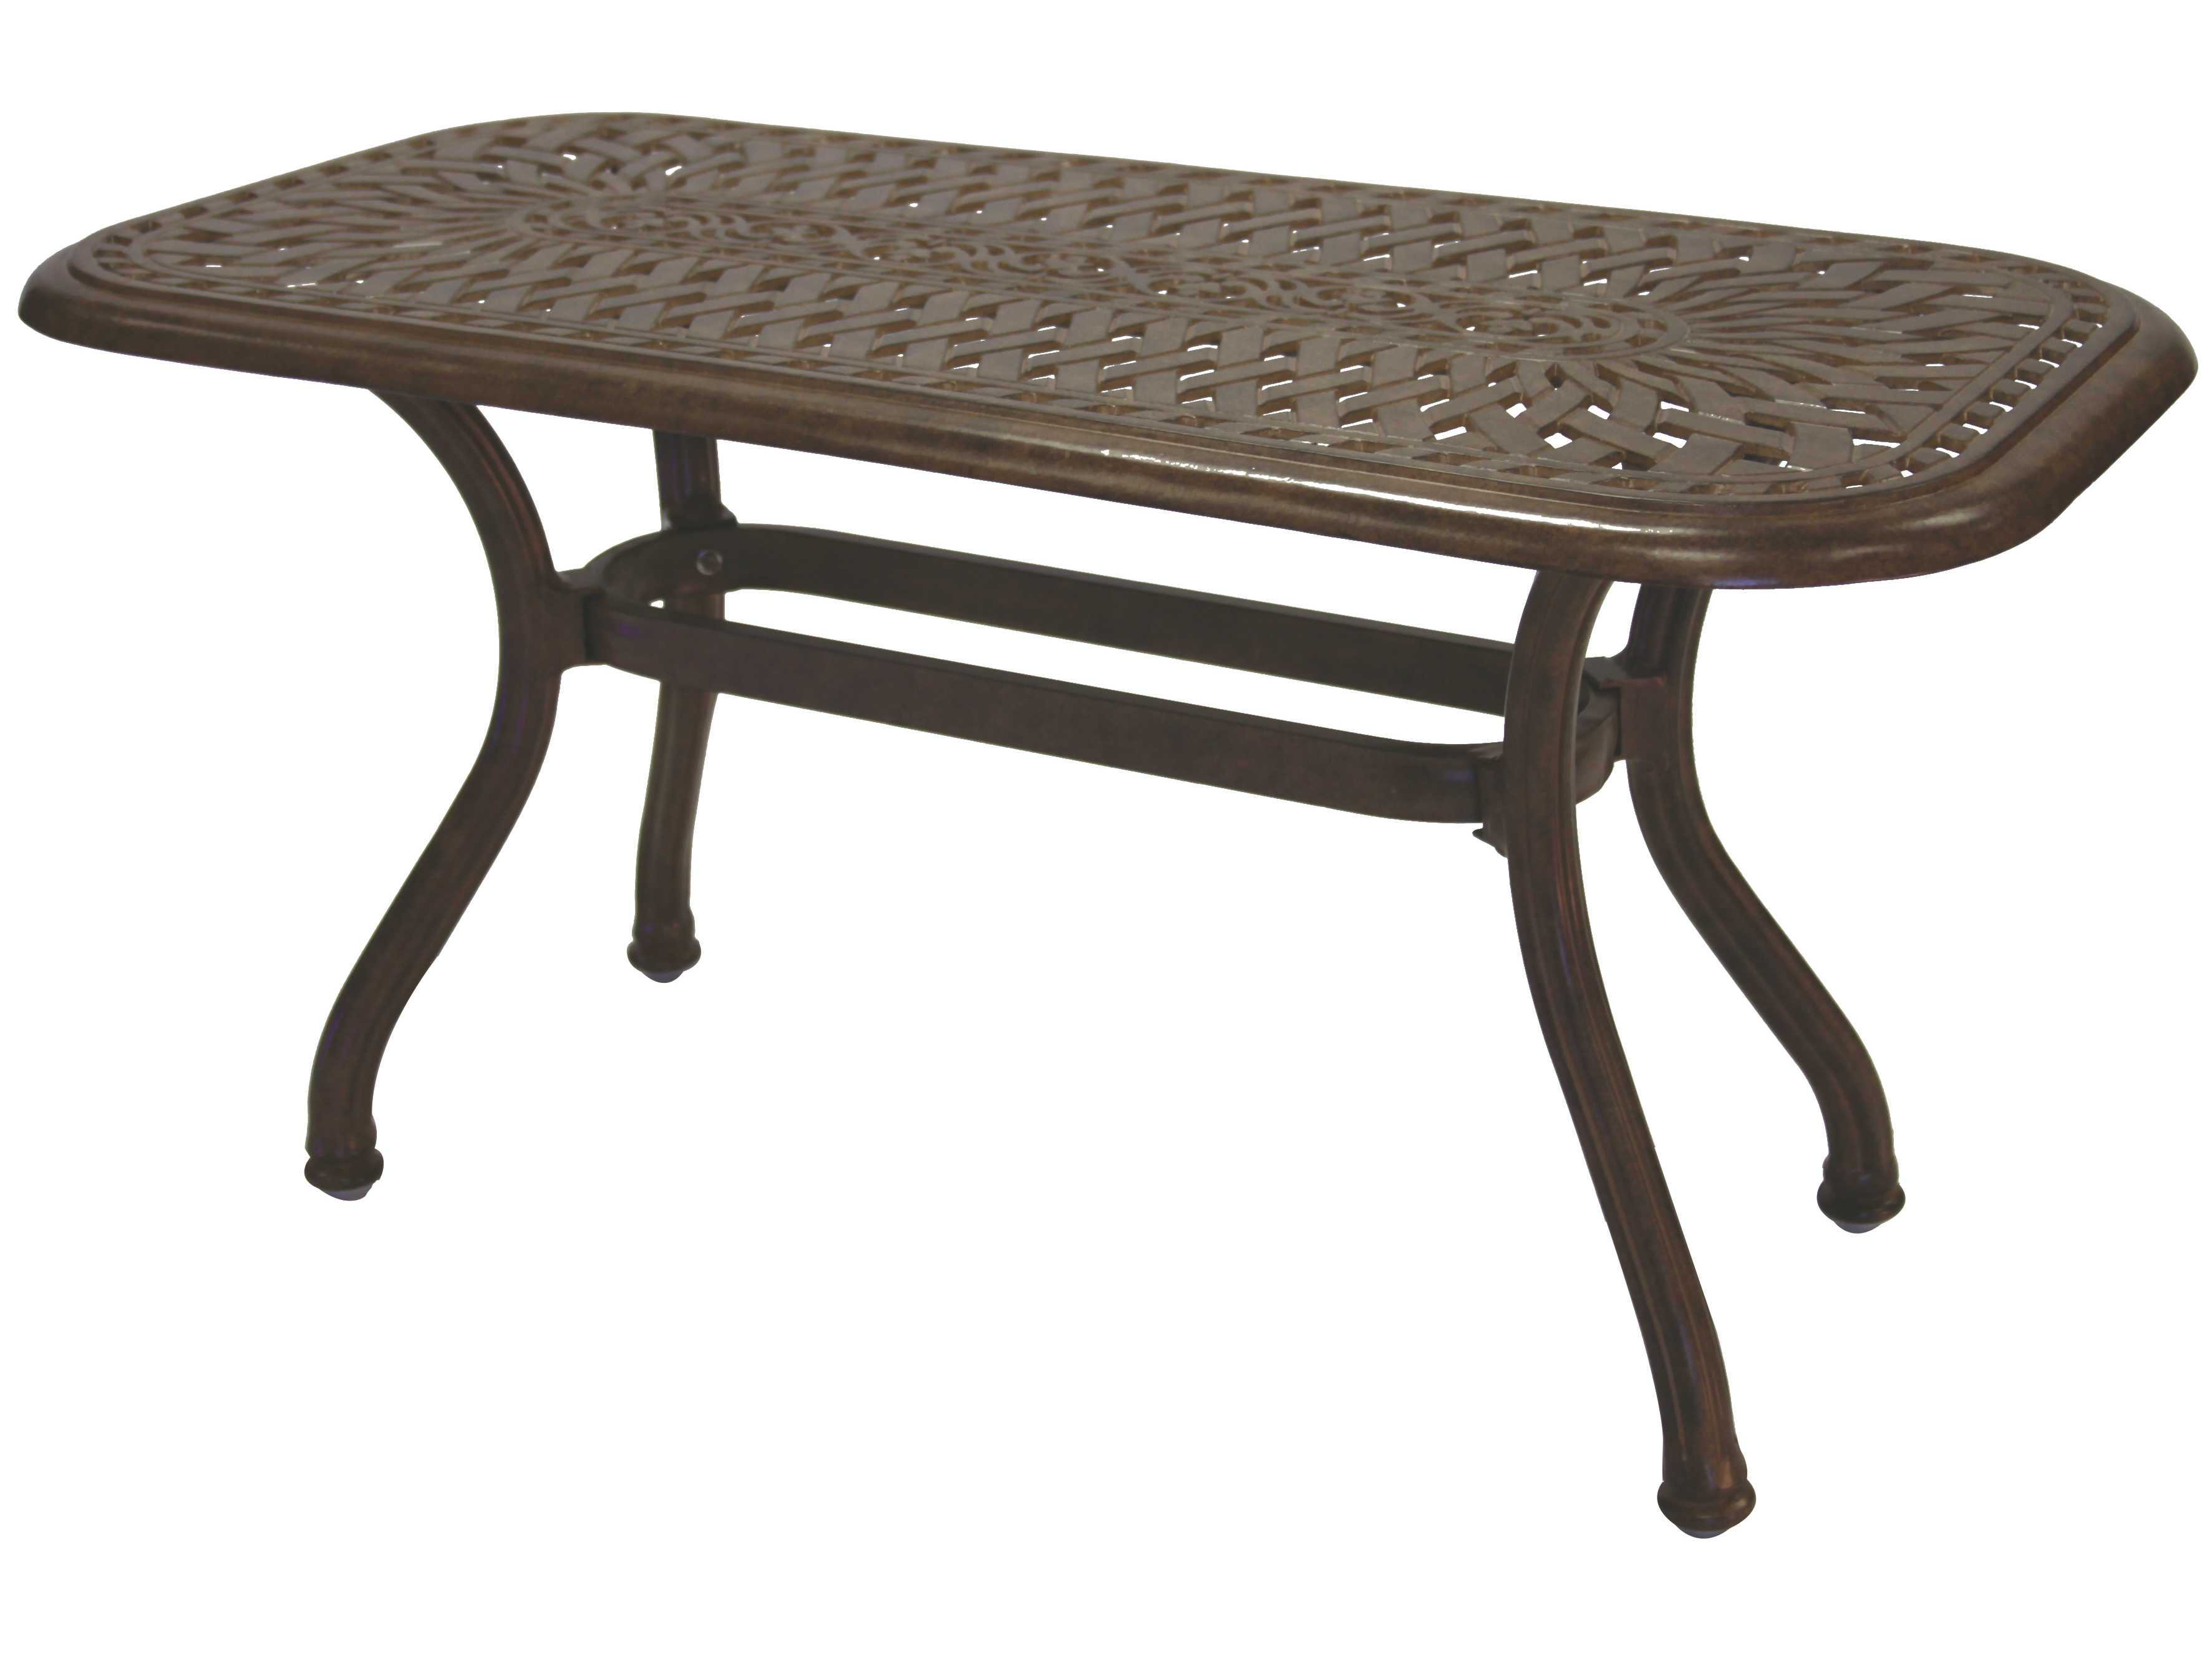 Darlee outdoor living series 60 cast aluminum 42 x 21 for Outdoor coffee table